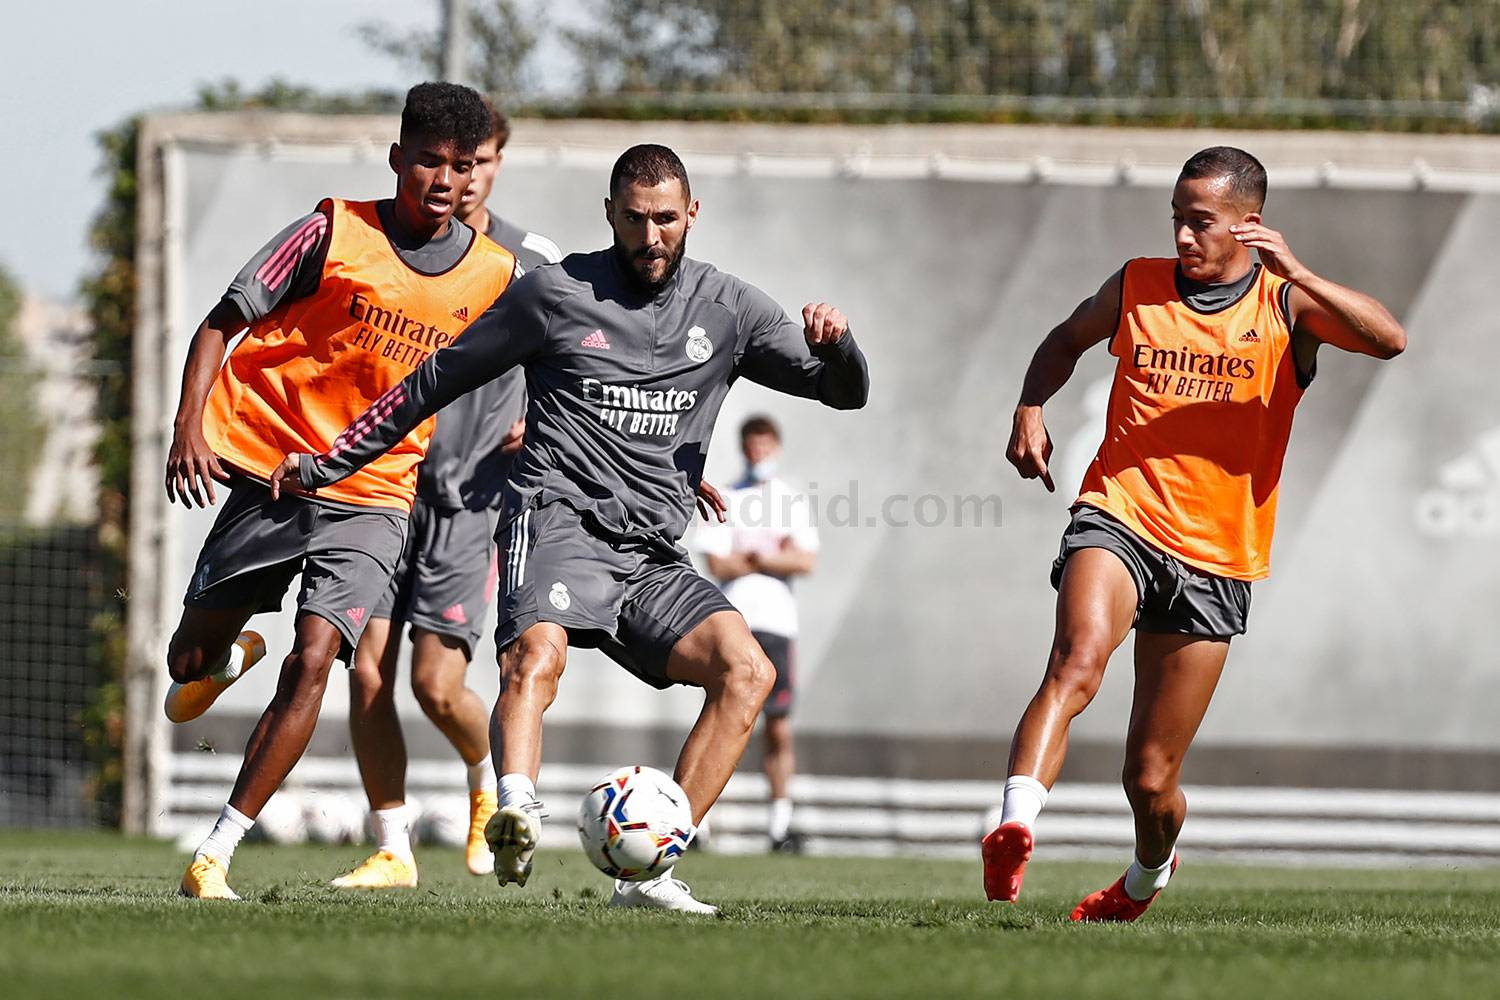 Real Madrid - Entrenamiento del Real Madrid  - 03-09-2020